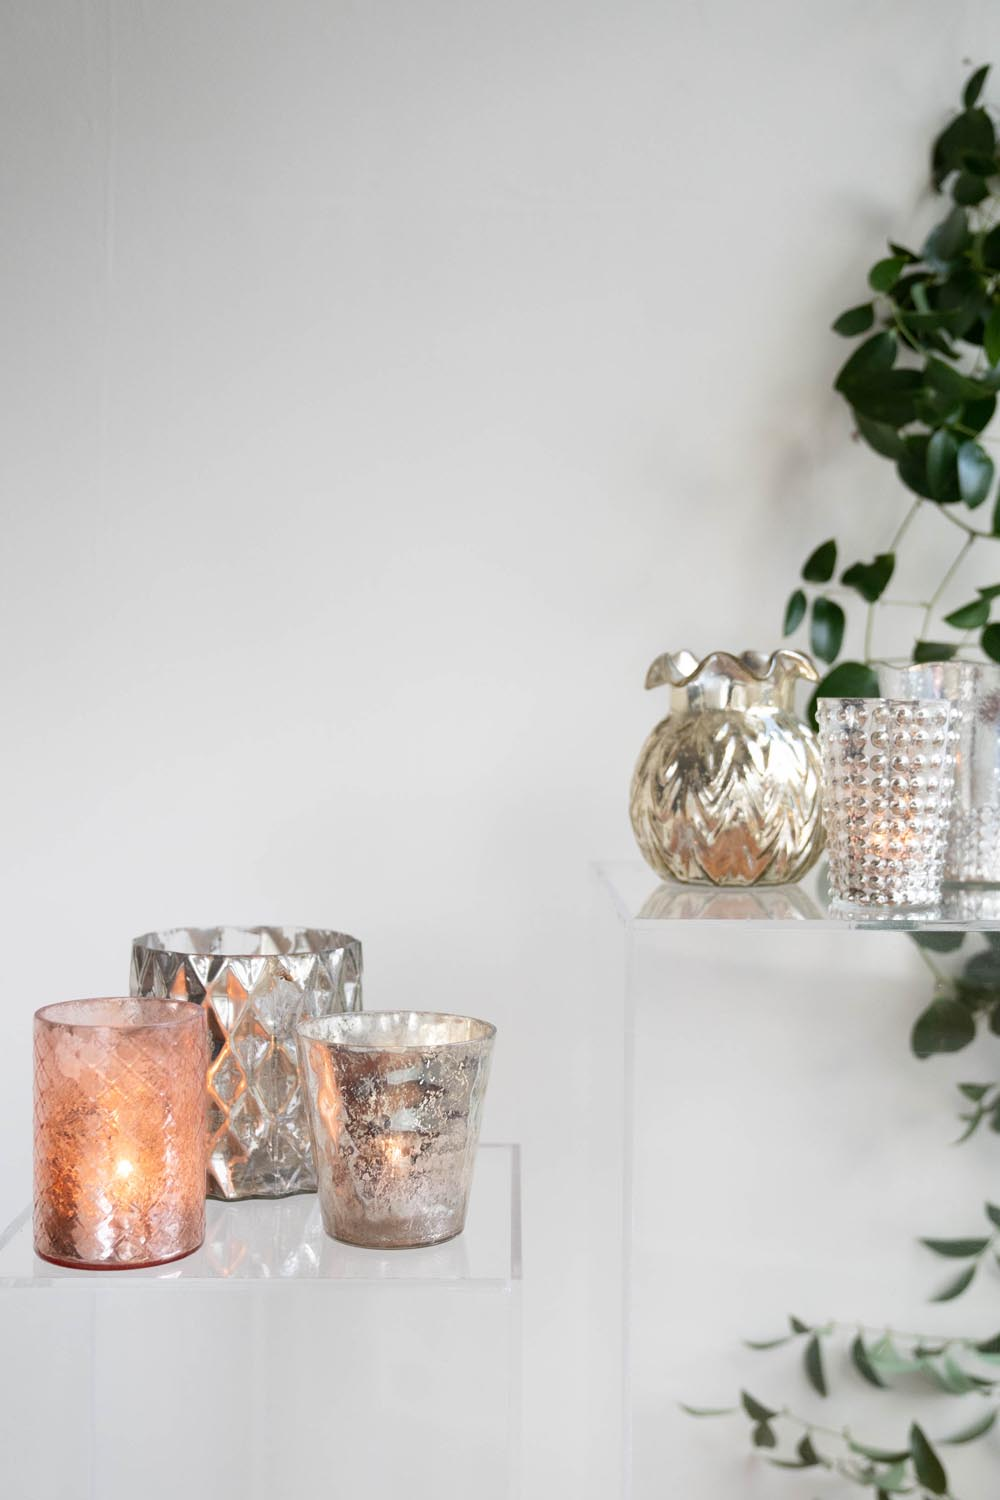 Mercury vases and candle holders